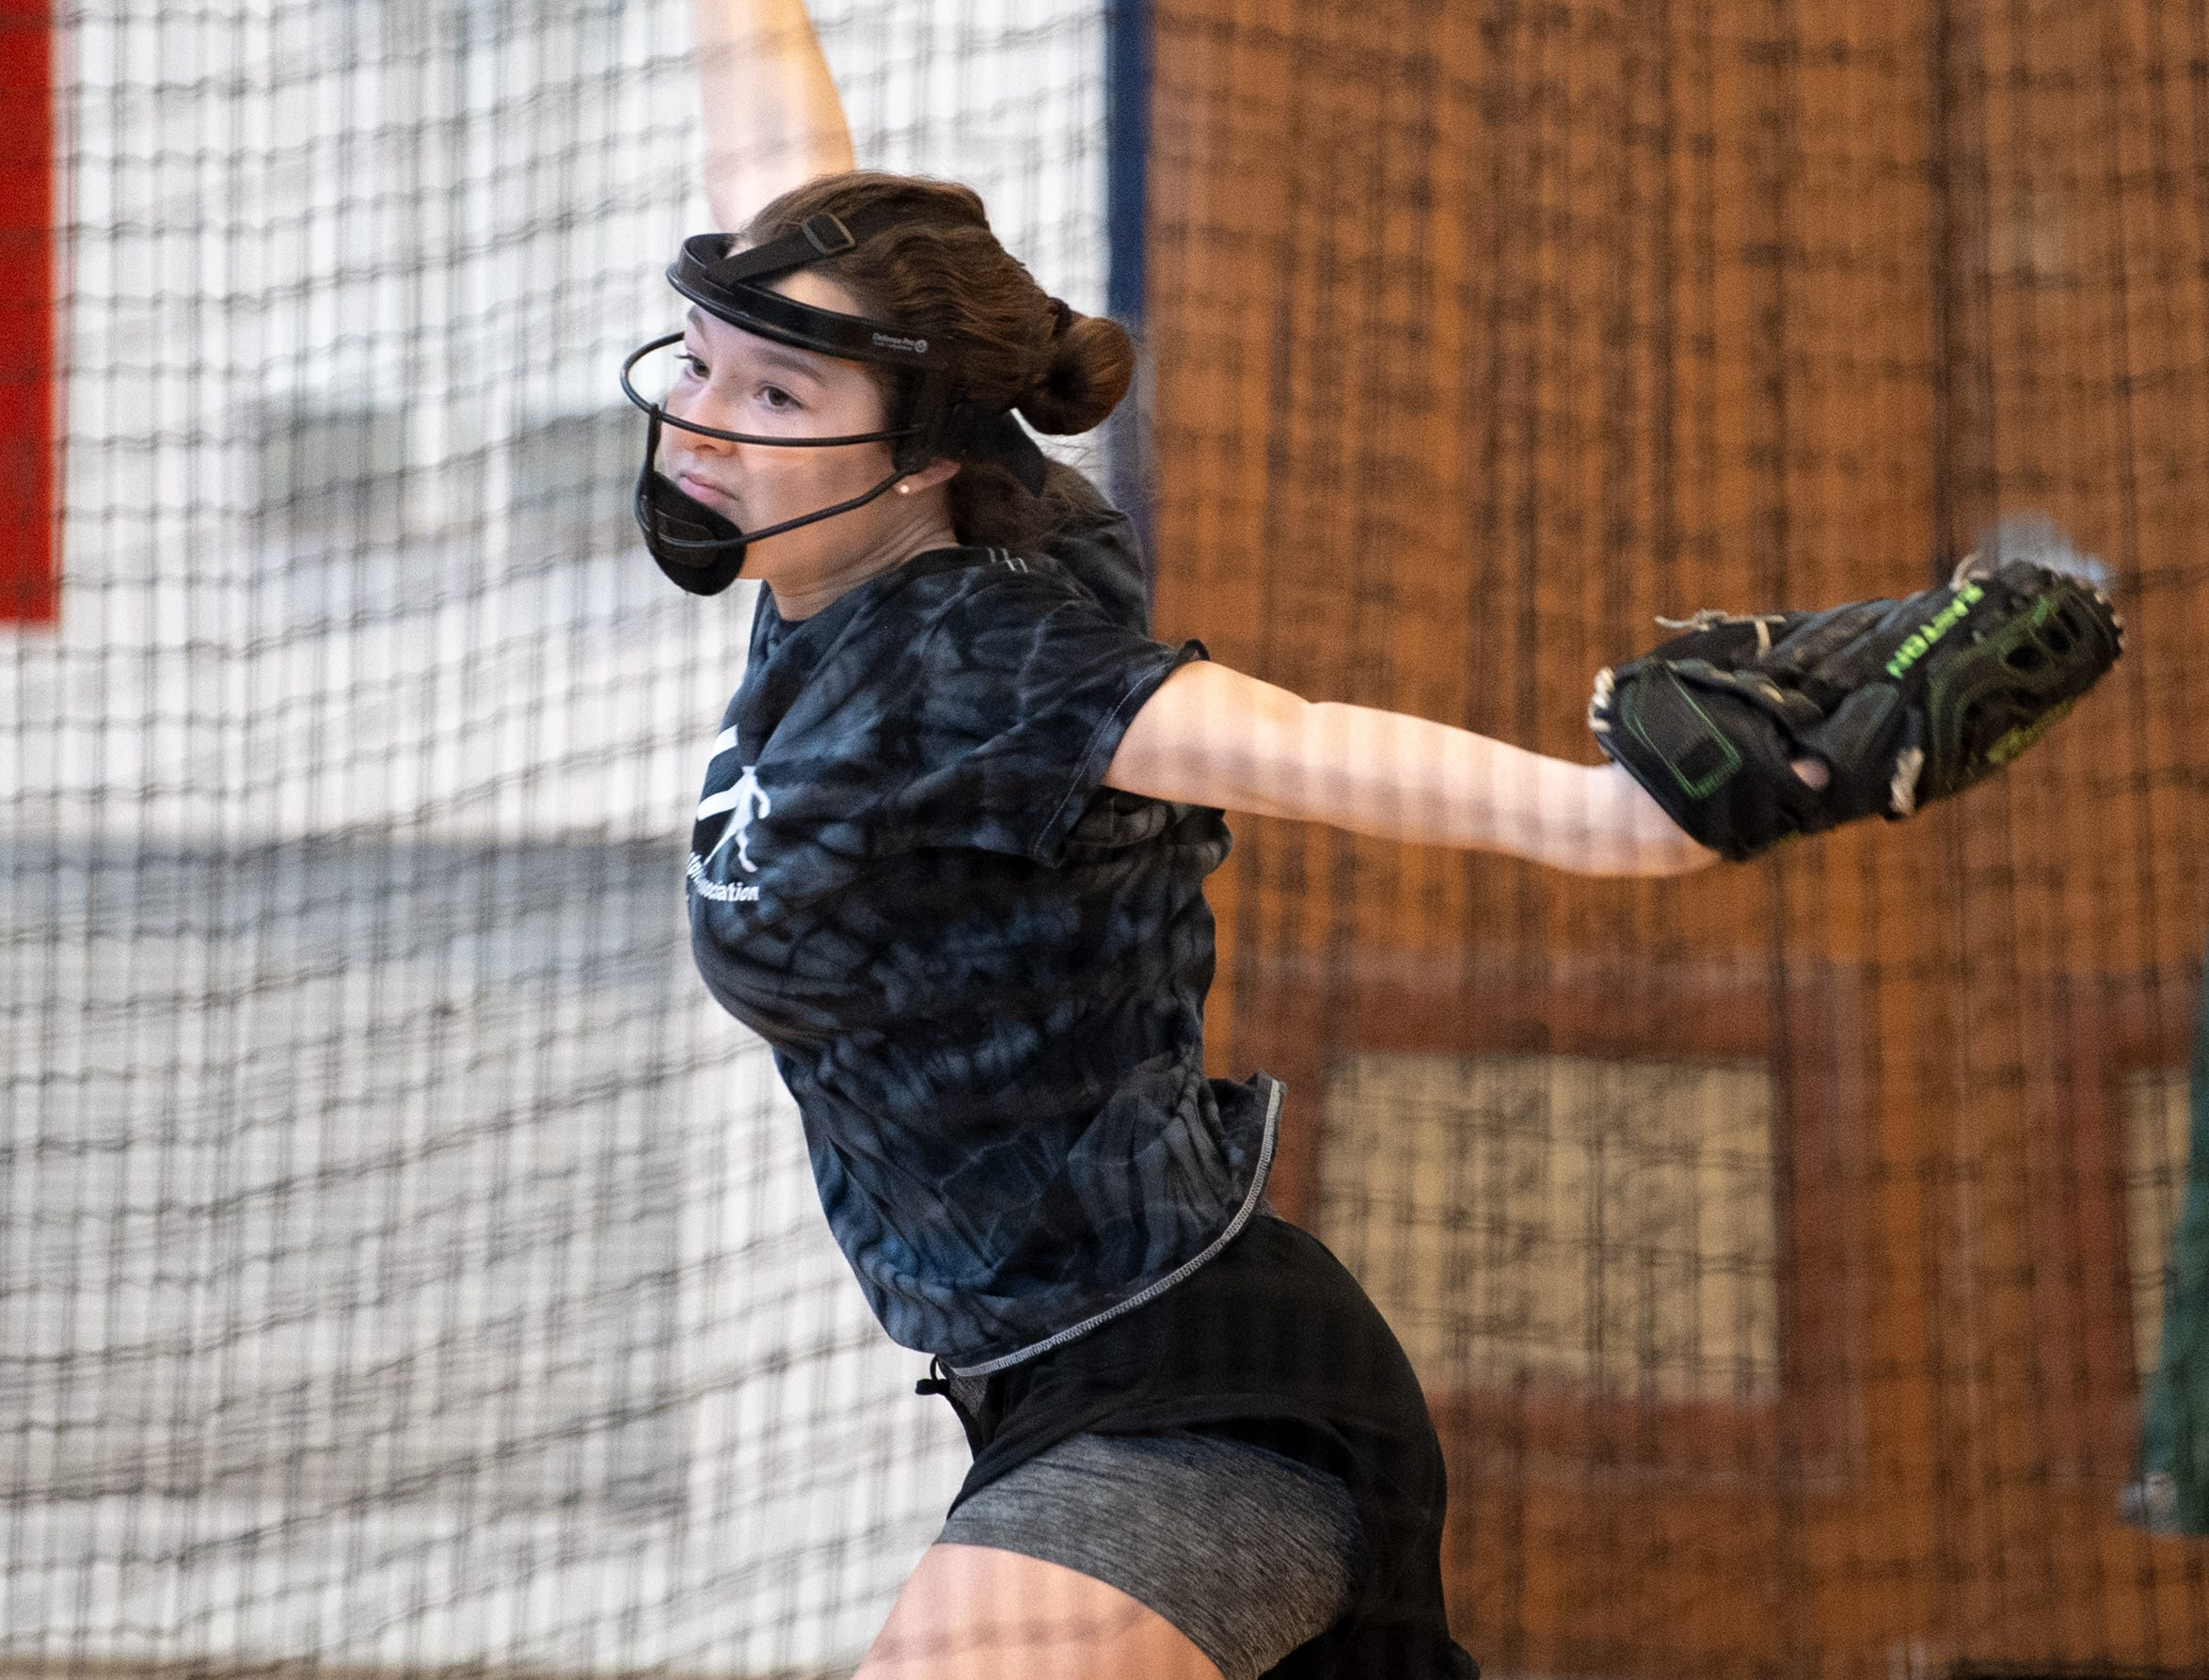 West York's softball pitchers get their reps in during practice, March 5, 2019.